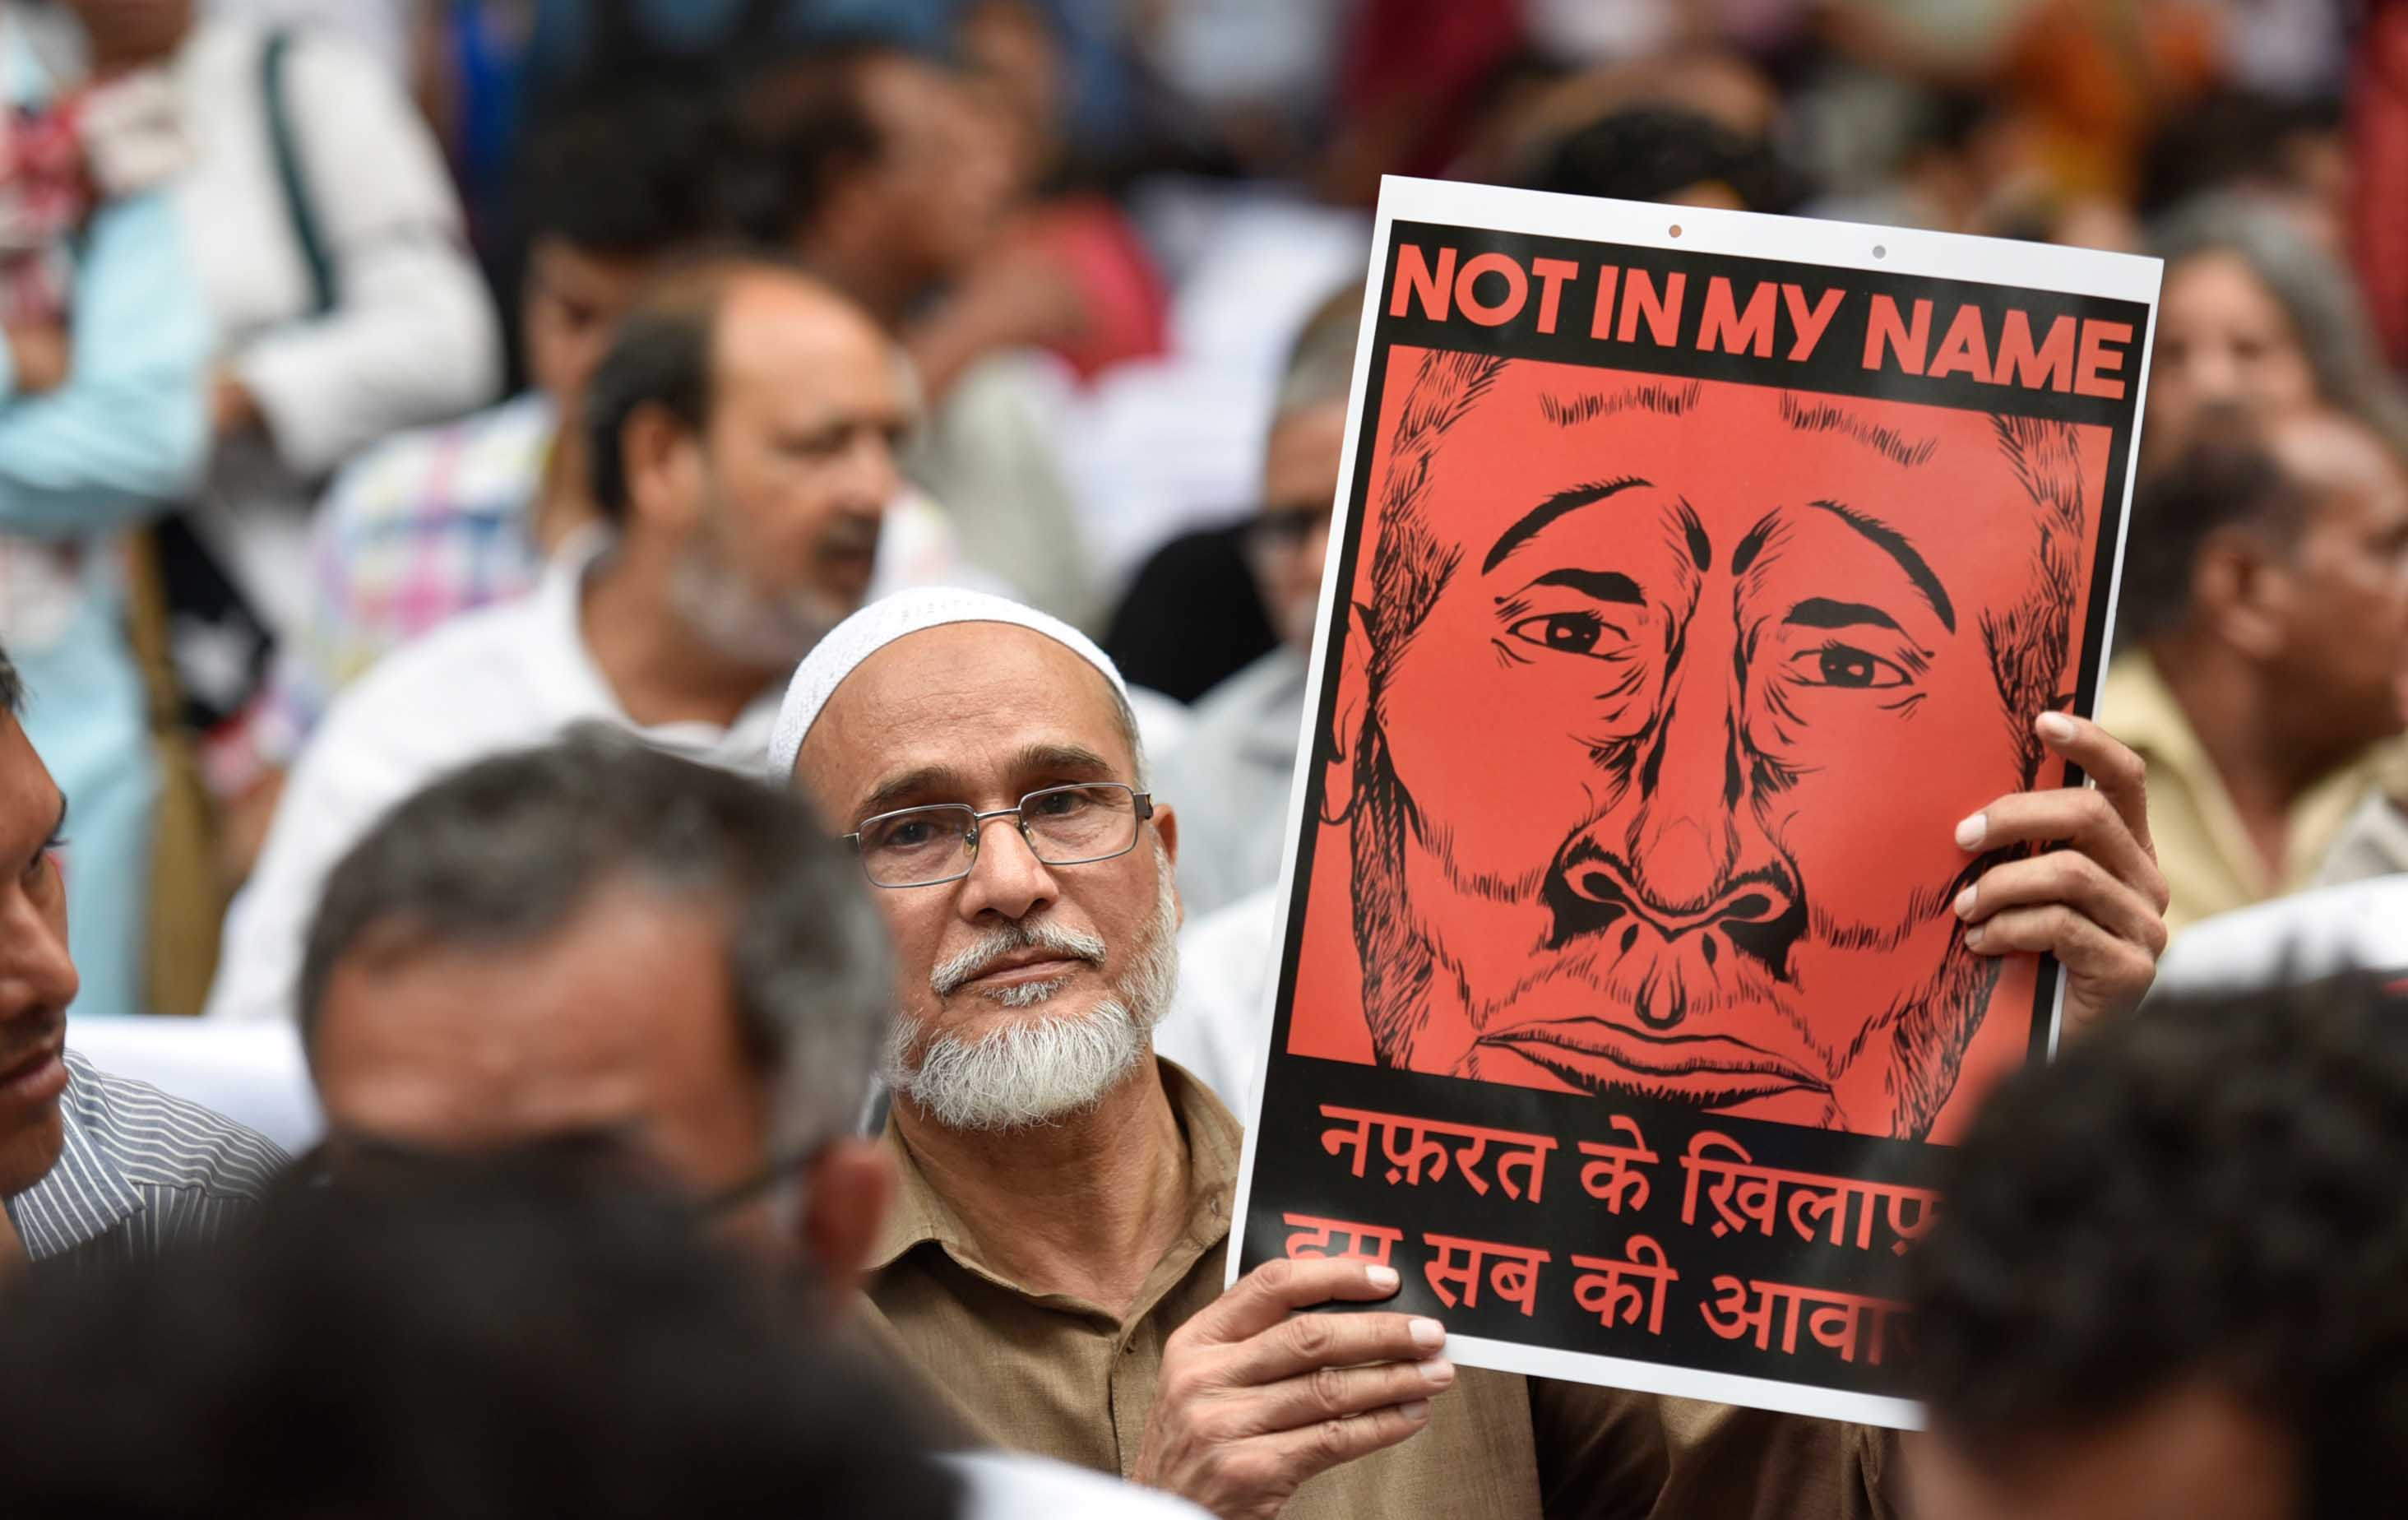 When Will Akhlaq Get Justice?